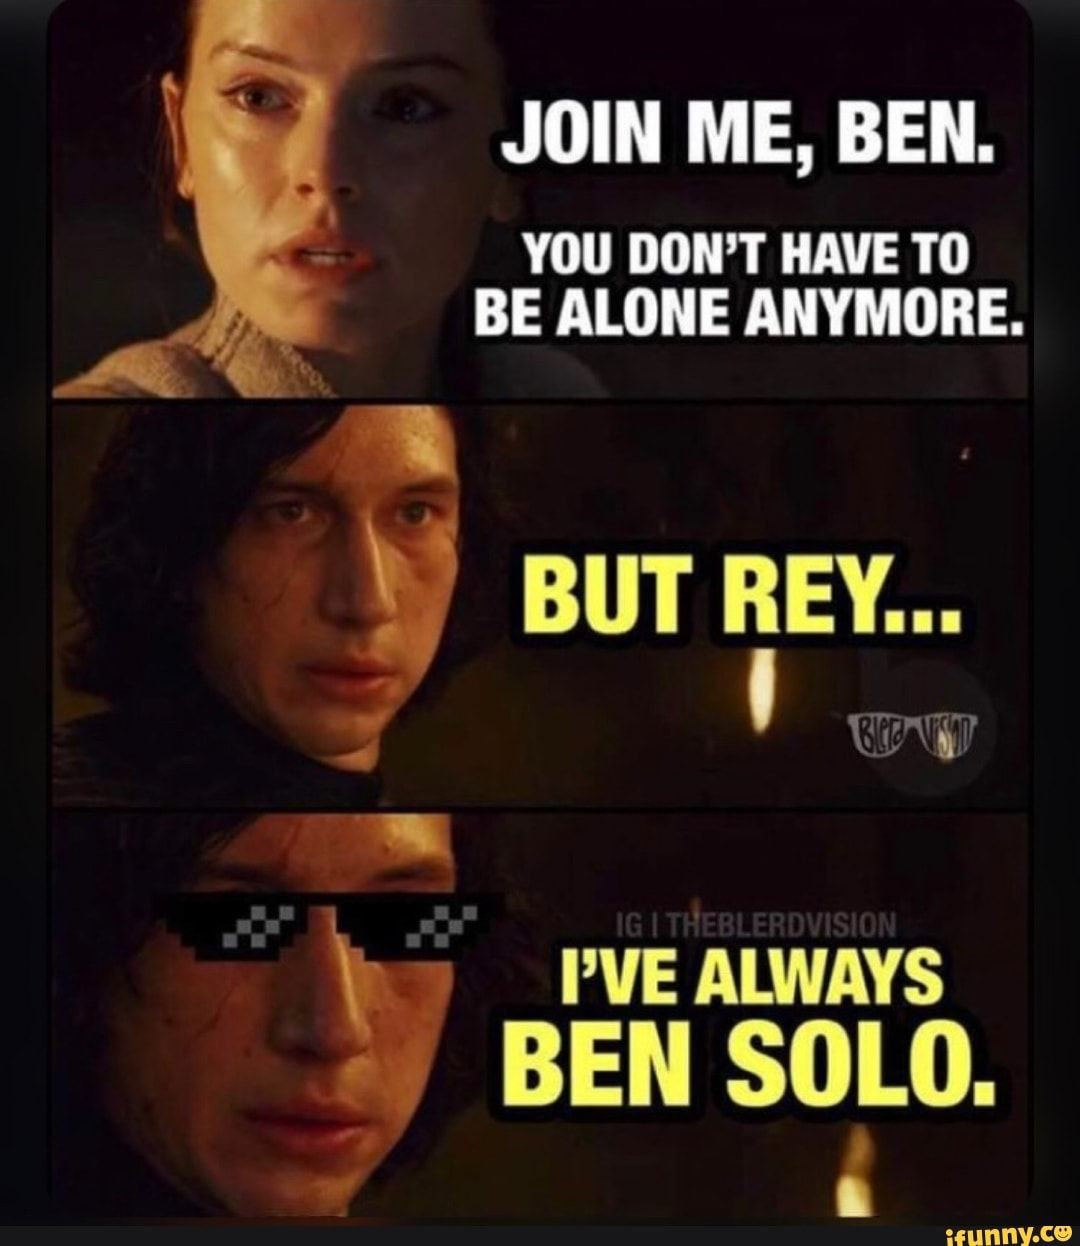 Join Me Ben You Don T Have To Be Alone Anymore But L Ey C I Ve Always Ben Solo I Ifunny Funny Star Wars Memes Star Wars Memes Star